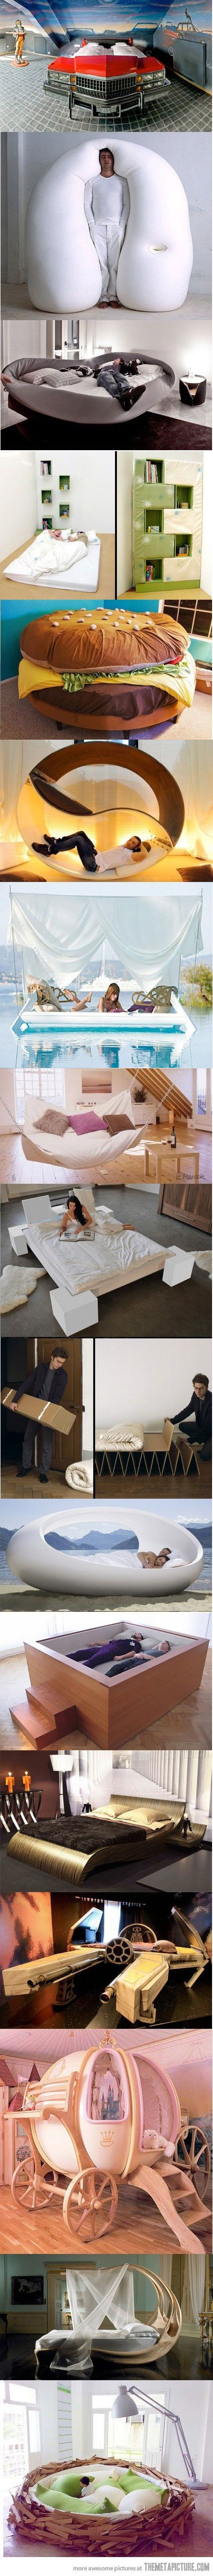 funny cool creative beds. awwweesome